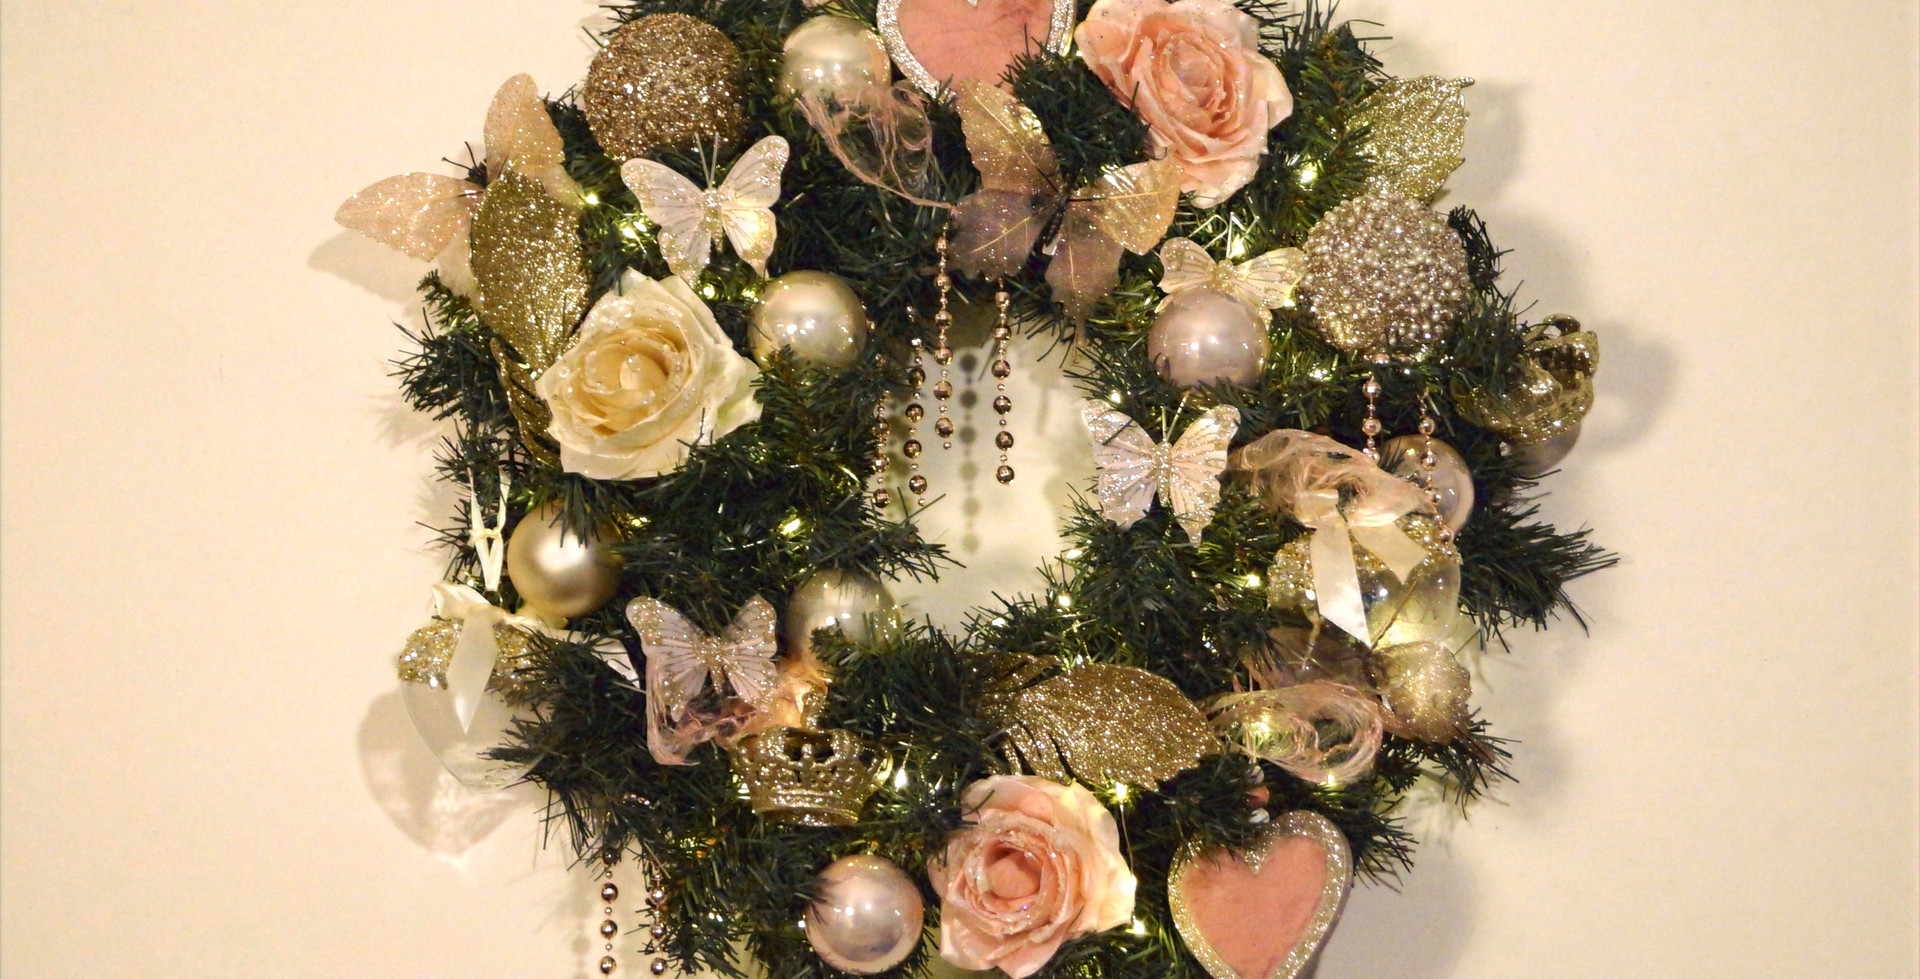 Kerstkrans romantic chic